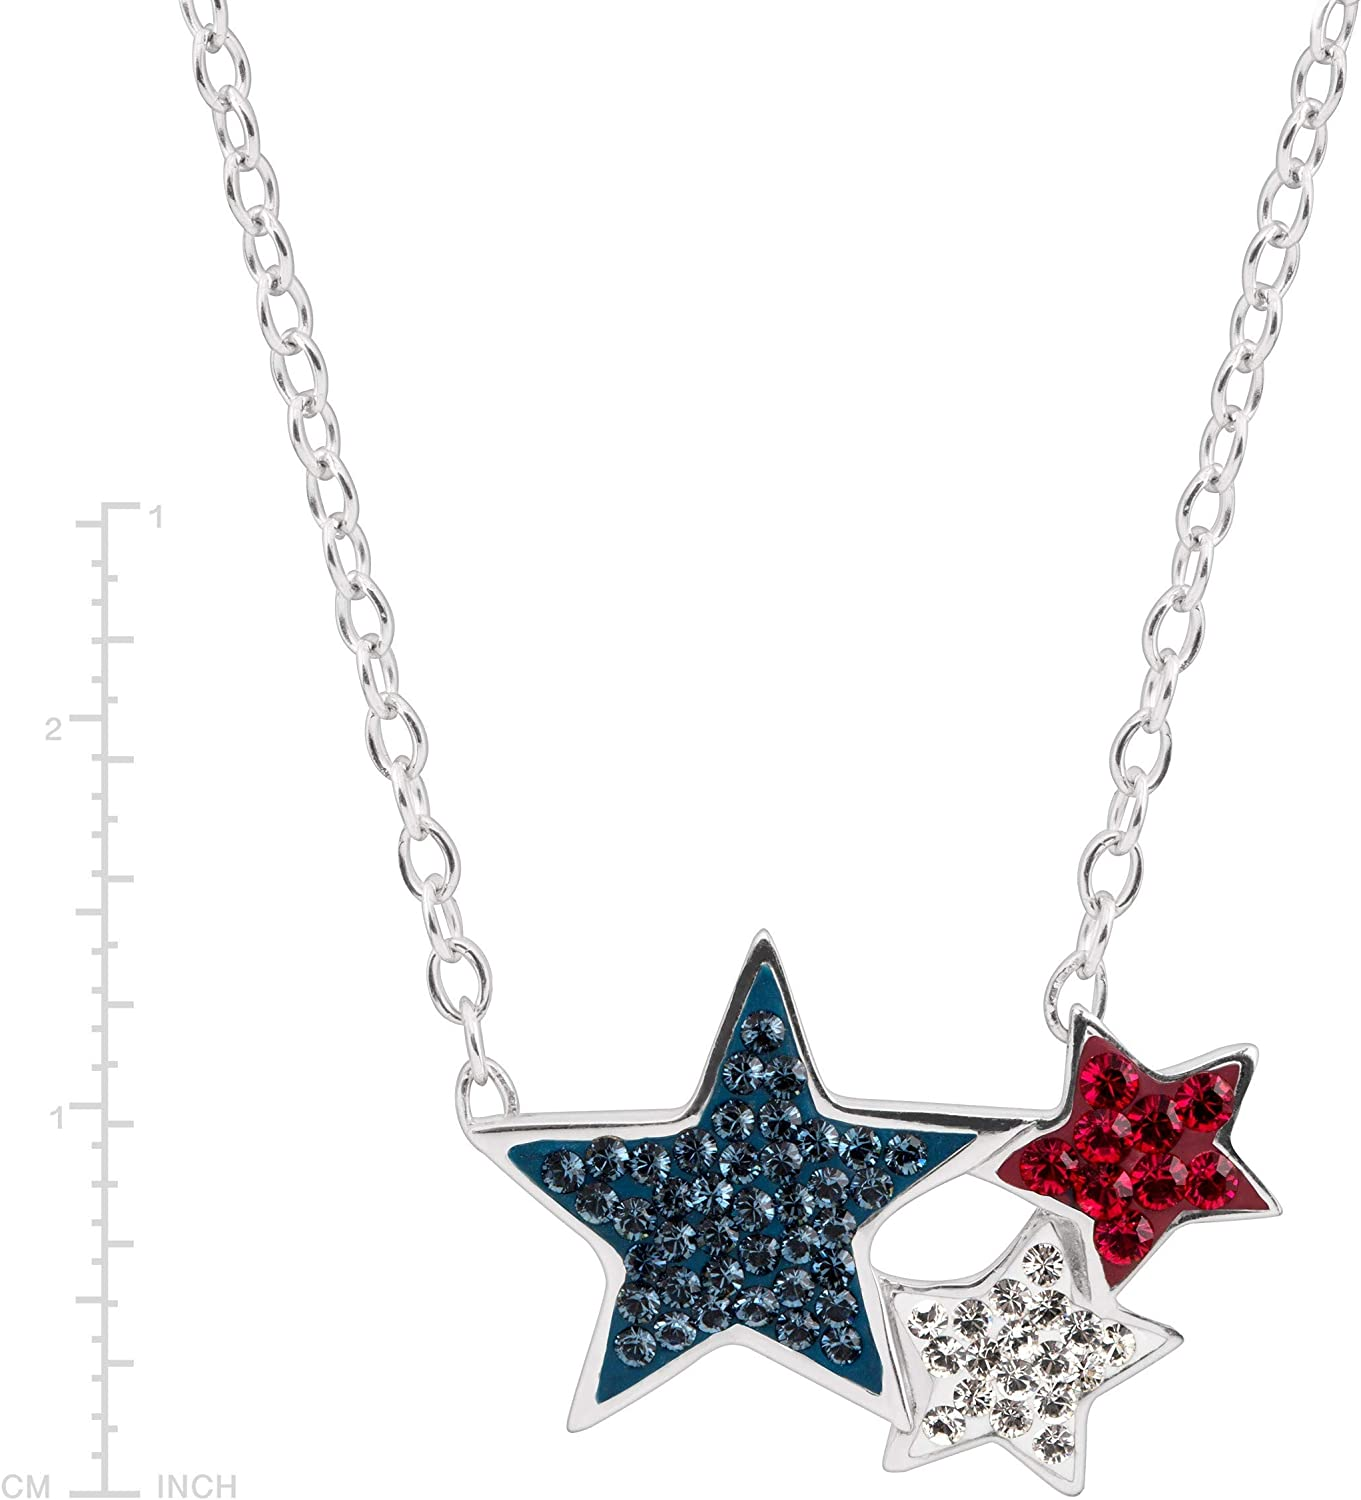 Residuos Cobertizo Bienes diversos  Amazon.com: Crystaluxe Red, White, Blue Triple-Star Necklace with Swarovski  Crystals in Sterling Silver, 17